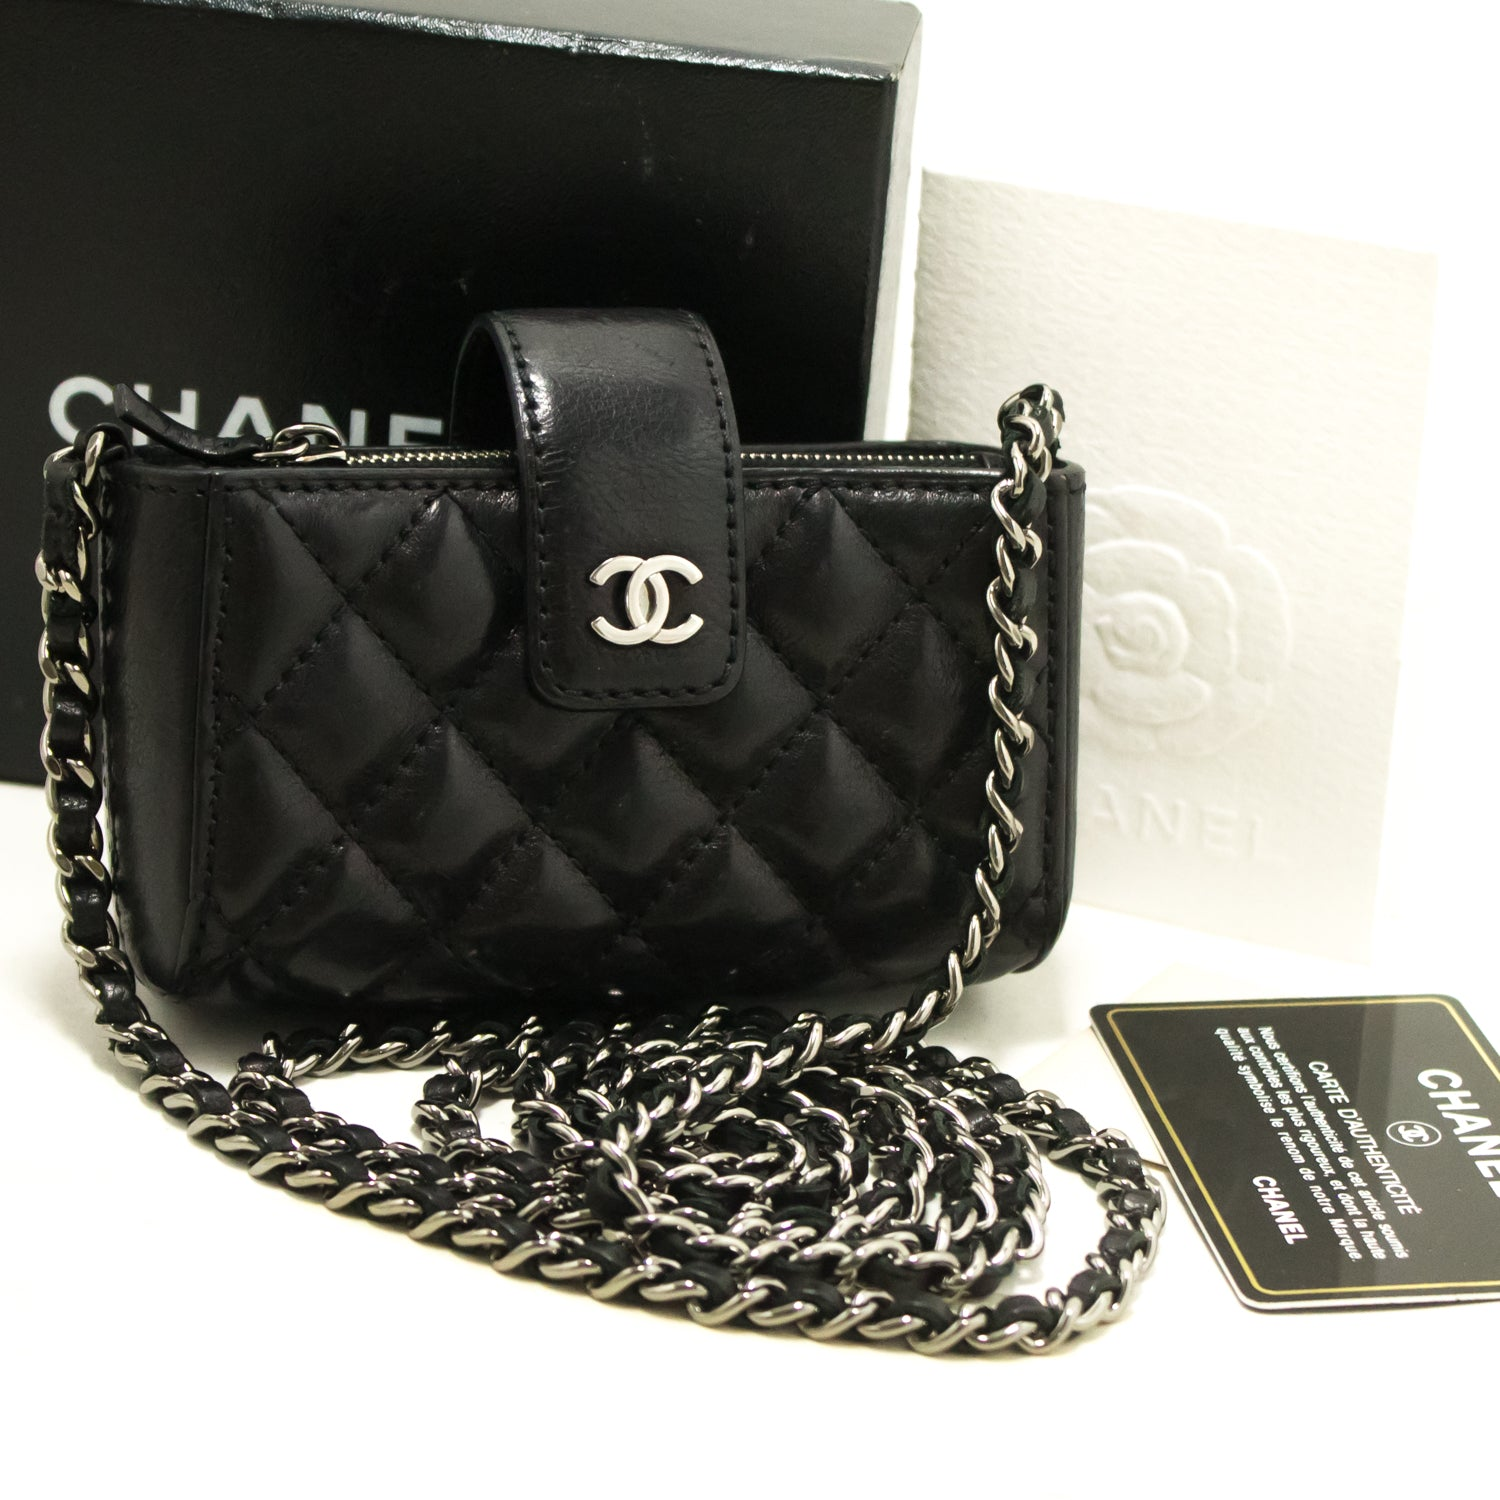 ... CHANEL Mini Small Chain Shoulder Bag Crossbody Black Quilted Lamb m88  ... 84a79a5990d93